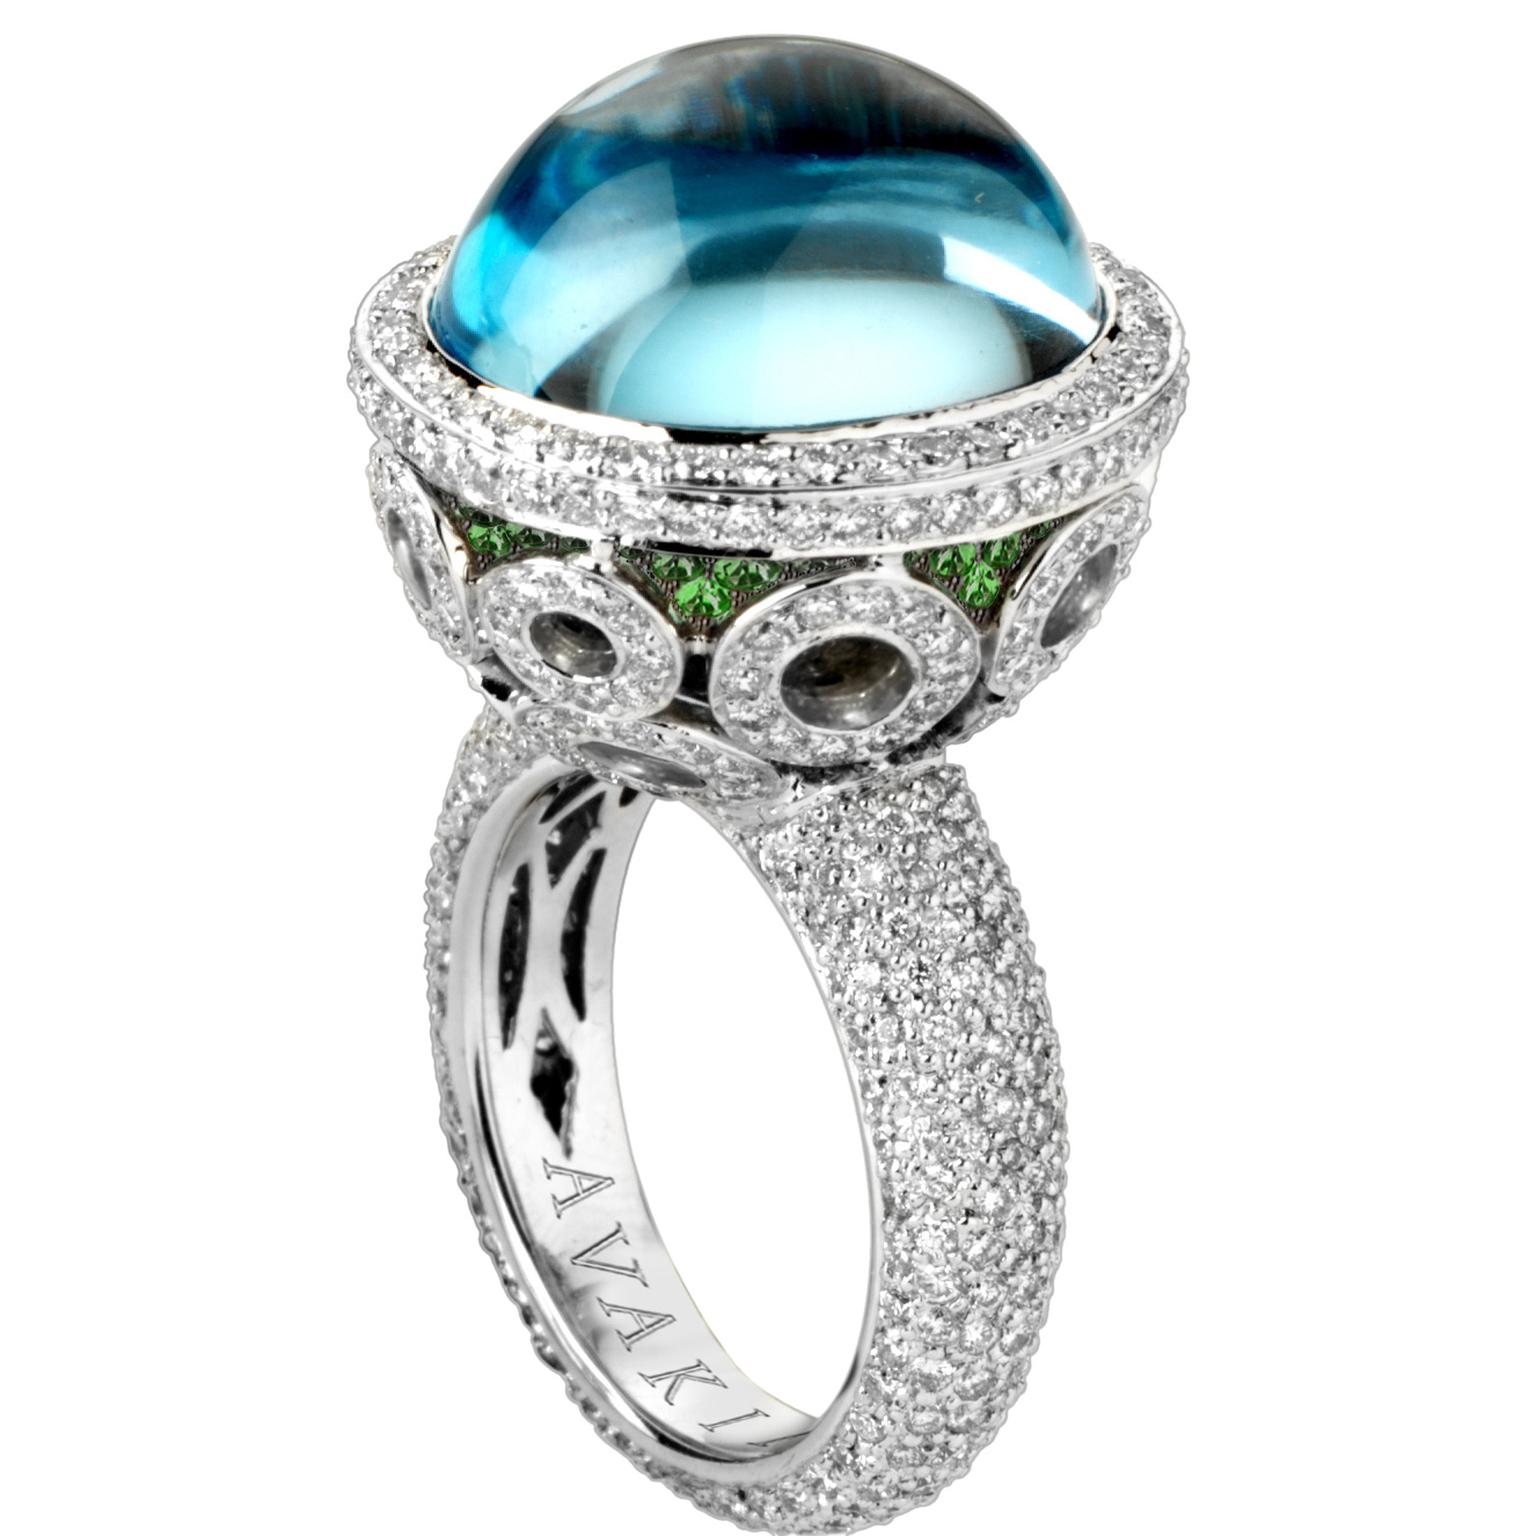 Avakian blue topaz Galaxy ring